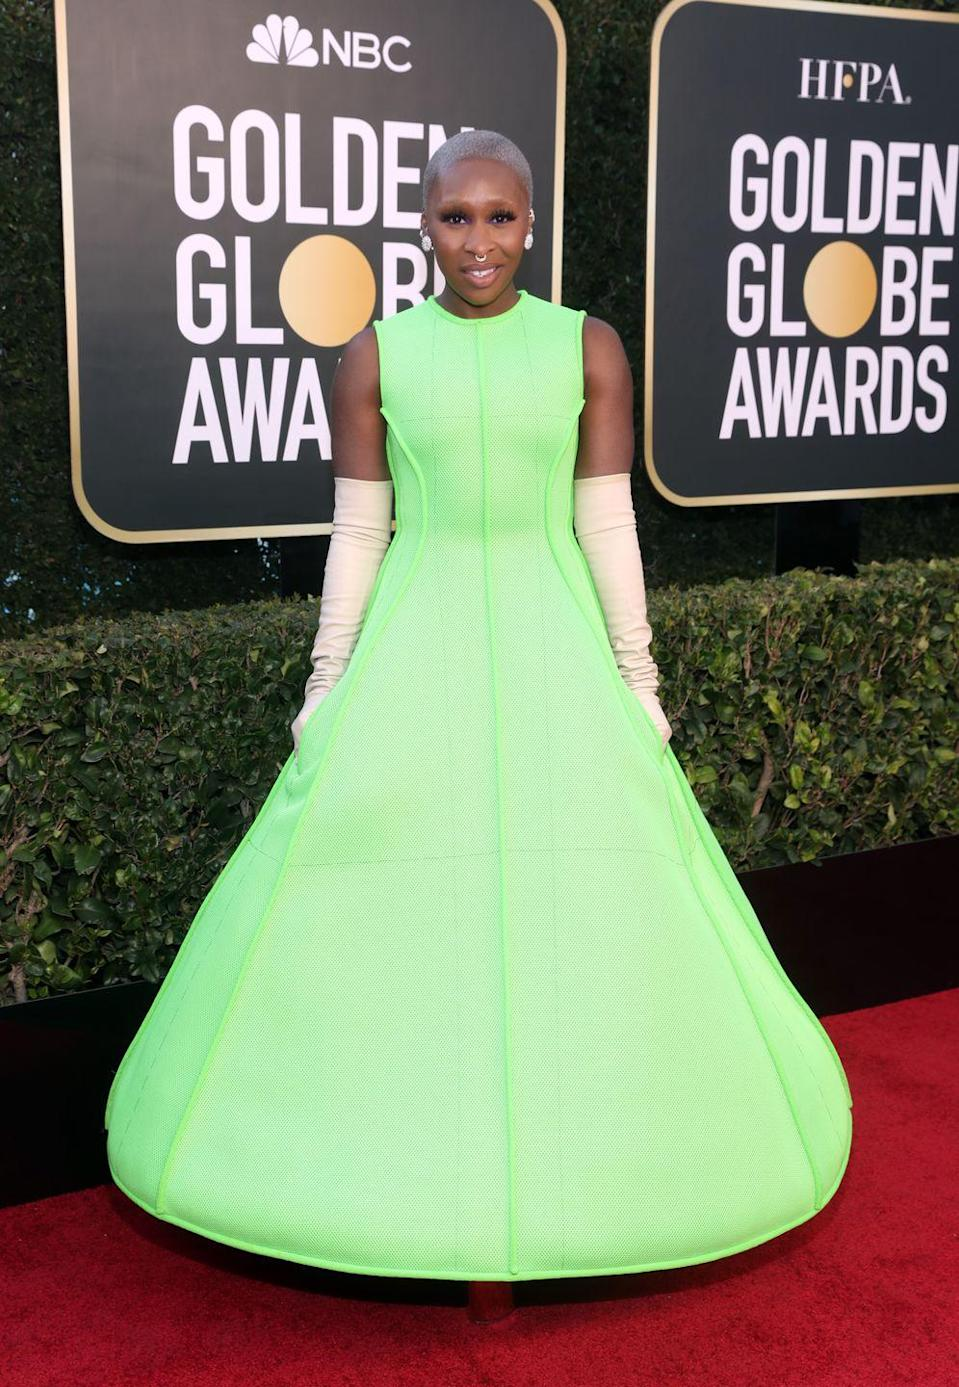 <p><strong>What: </strong>Valentino Couture, Wempe earrings, and Maria Tash jewelry</p><p><strong>Why: </strong>Not everyone can pull off neon green and elbow length gloves, but not everyone is Cynthia Ervivo. The stylish actress isn't afraid to take risks, and reportedly let Valentino be her guide for the evening, to very fun results. </p>